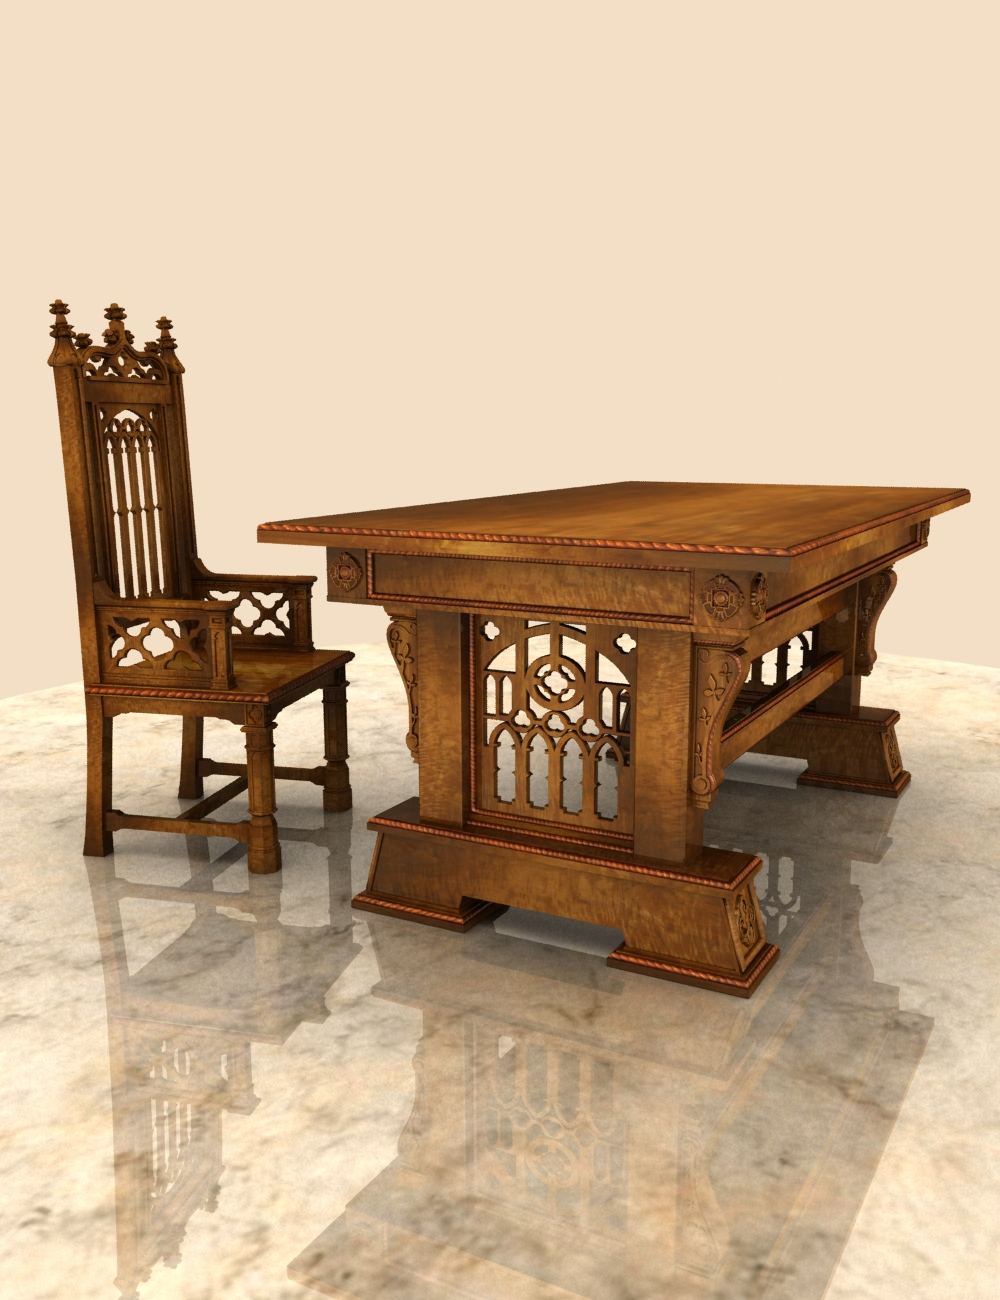 Gothic Desk & Chair by: hypnagogia, 3D Models by Daz 3D